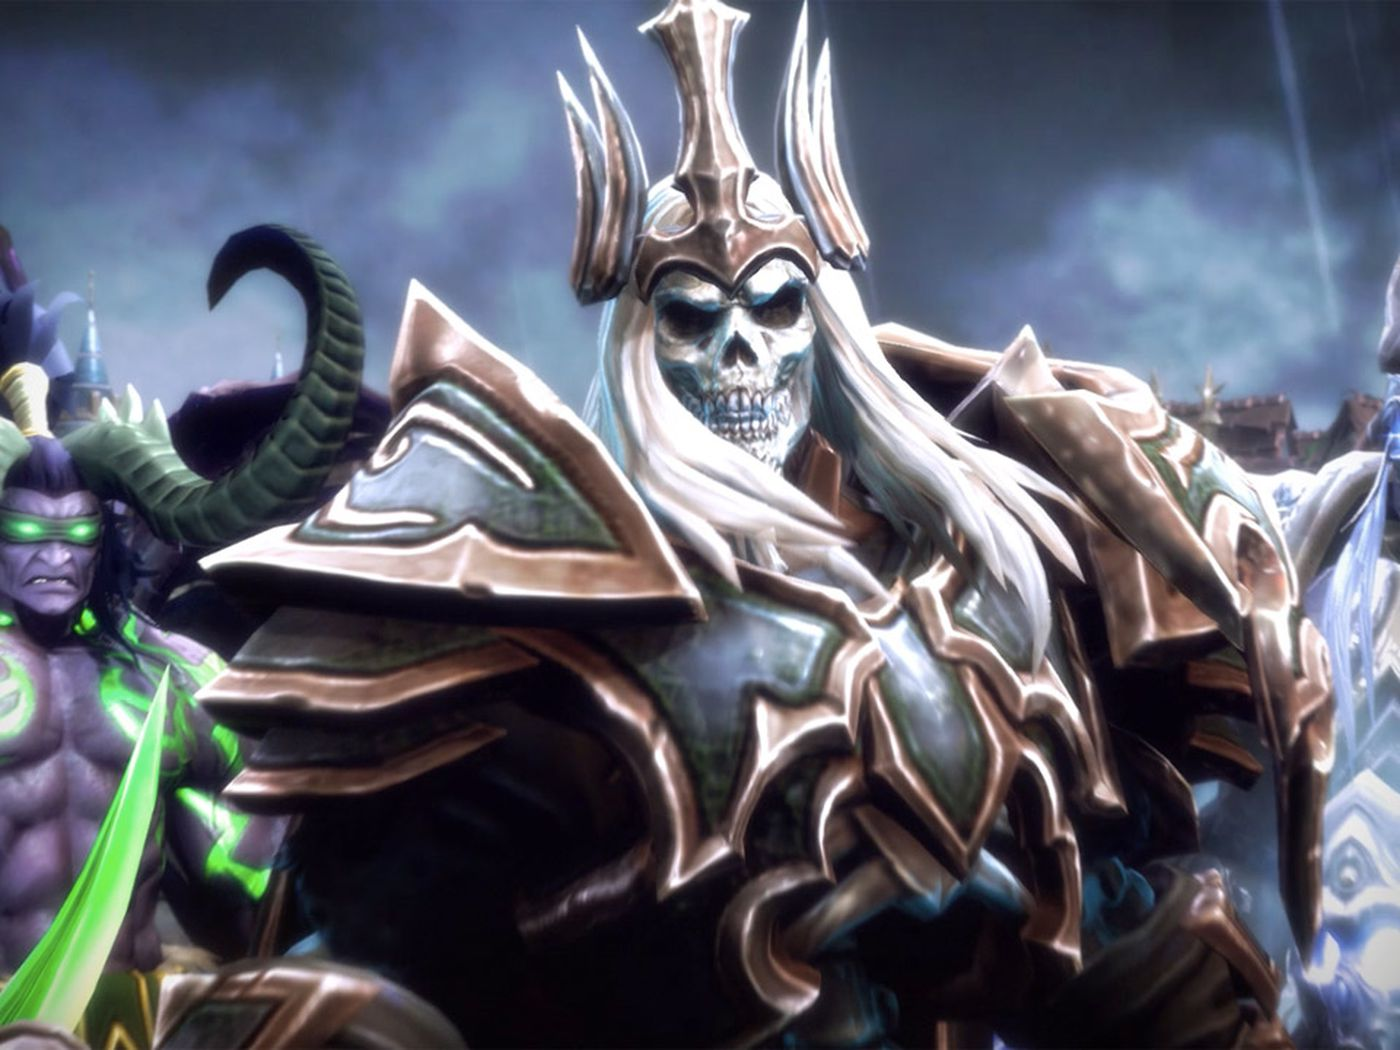 Heroes Of The Storm Welcomes A New Diablo Champion King Leoric Update Polygon Will update the build during the week as more games are played and the rest of the guide in a week. diablo champion king leoric update